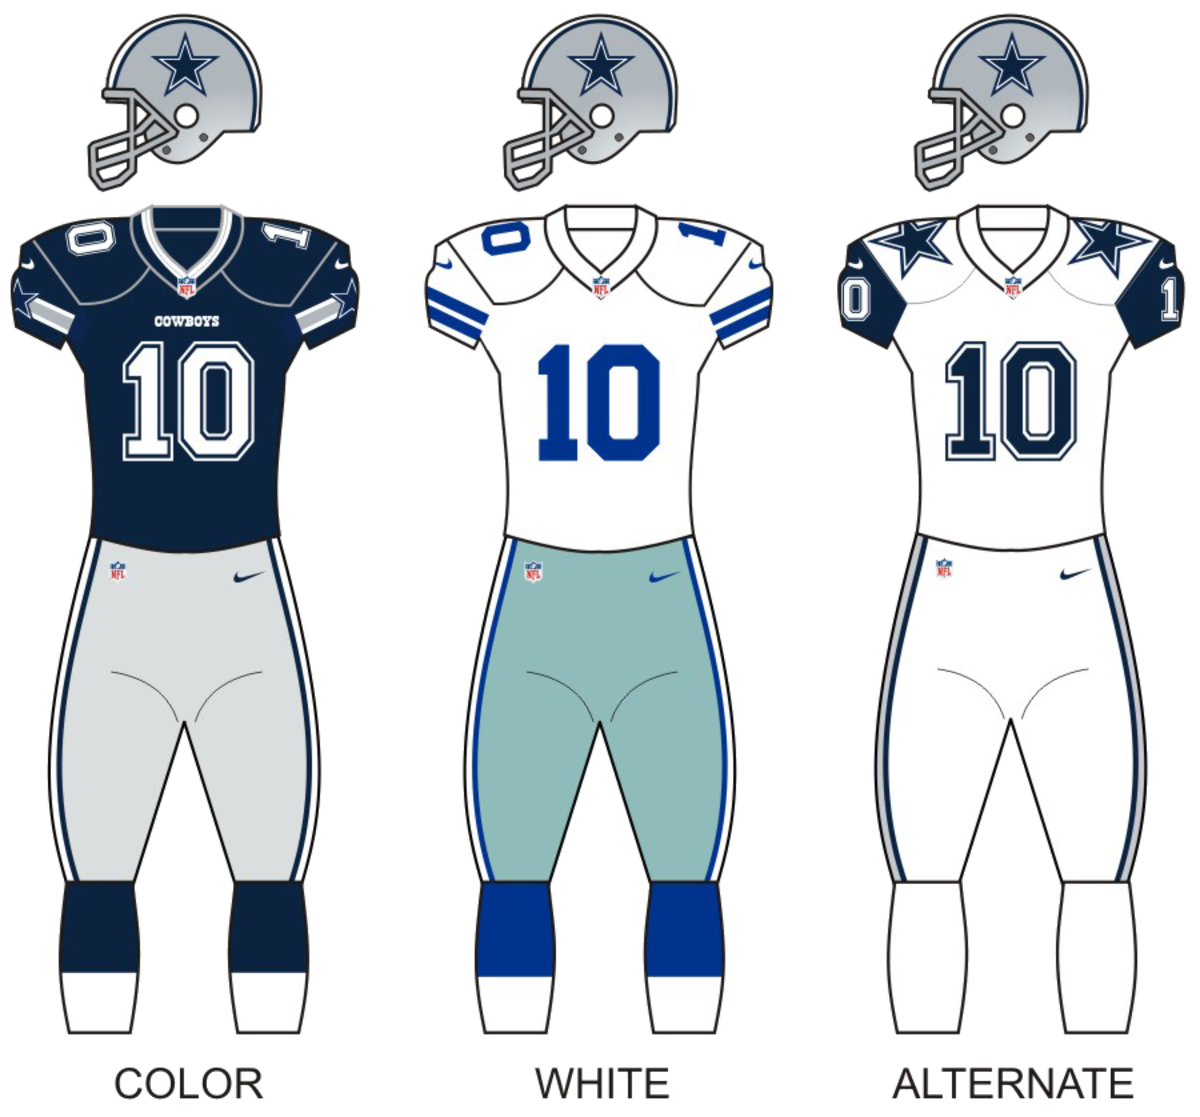 f0ea76ef5 2016 Dallas Cowboys season - Wikipedia